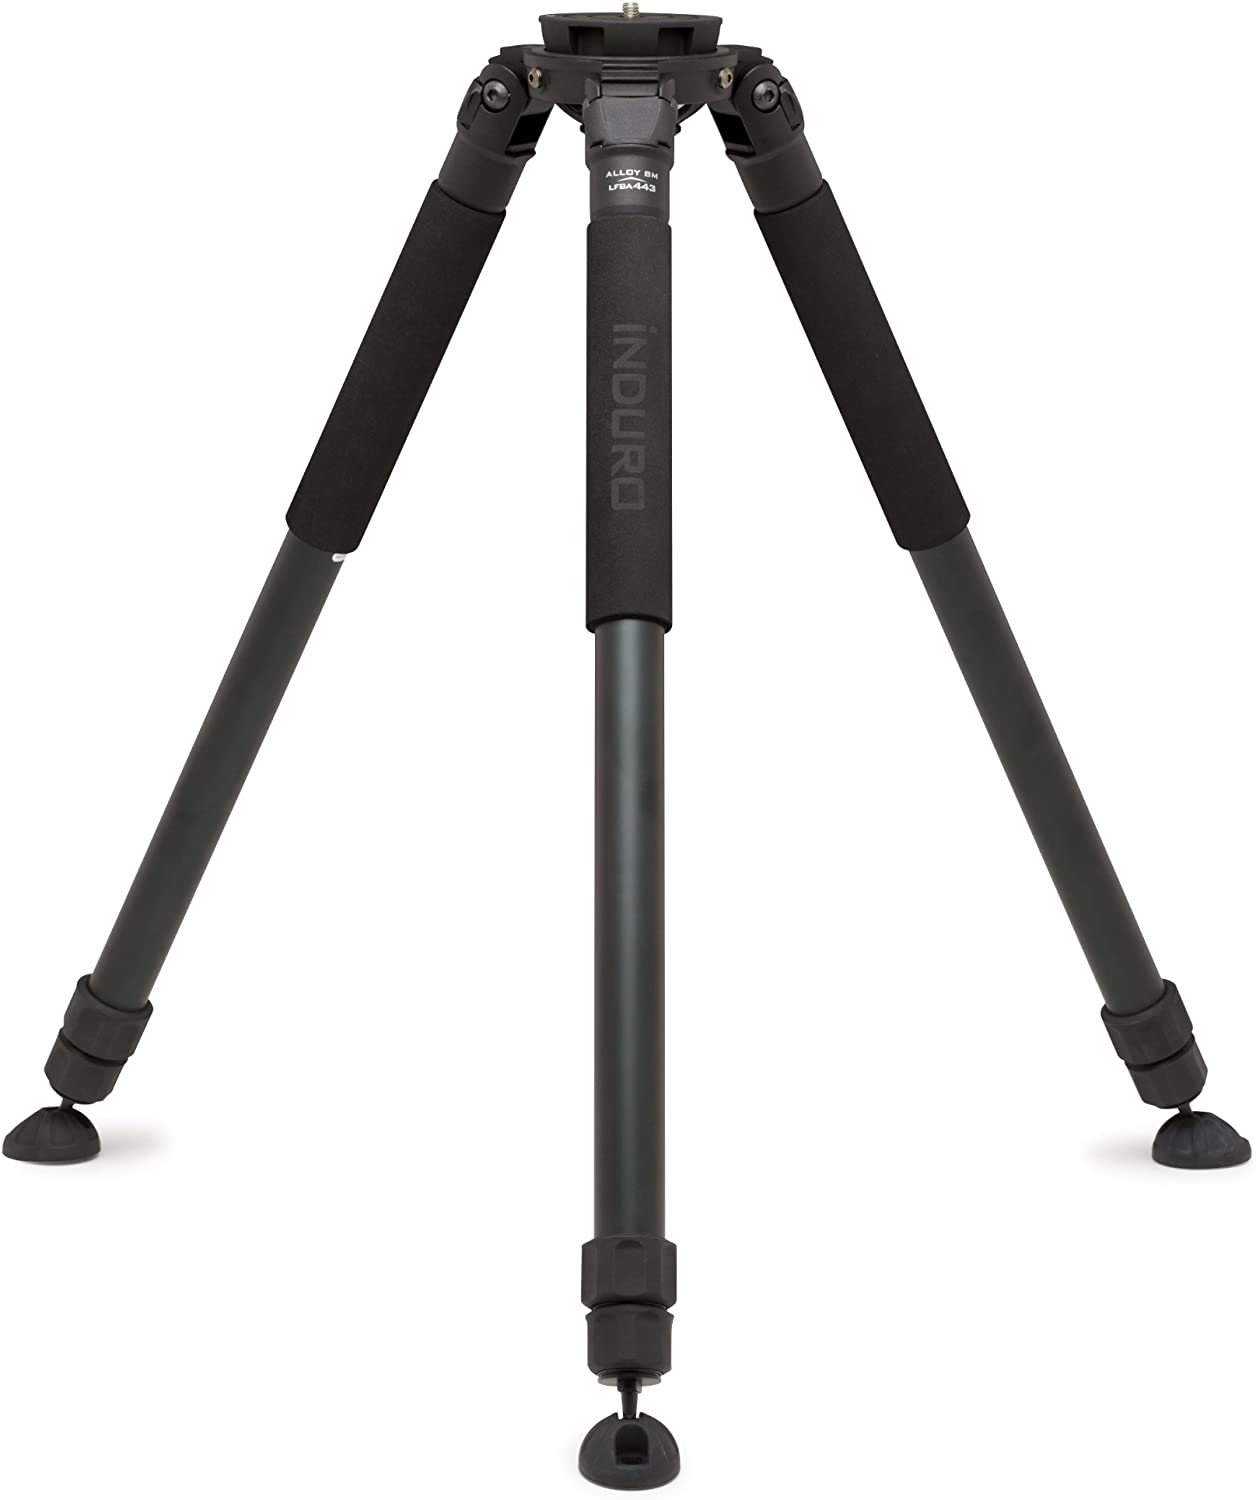 Black Induro Tripods 475-443 LFBA443S Alloy 8M 100mm Bowl Video Tripod